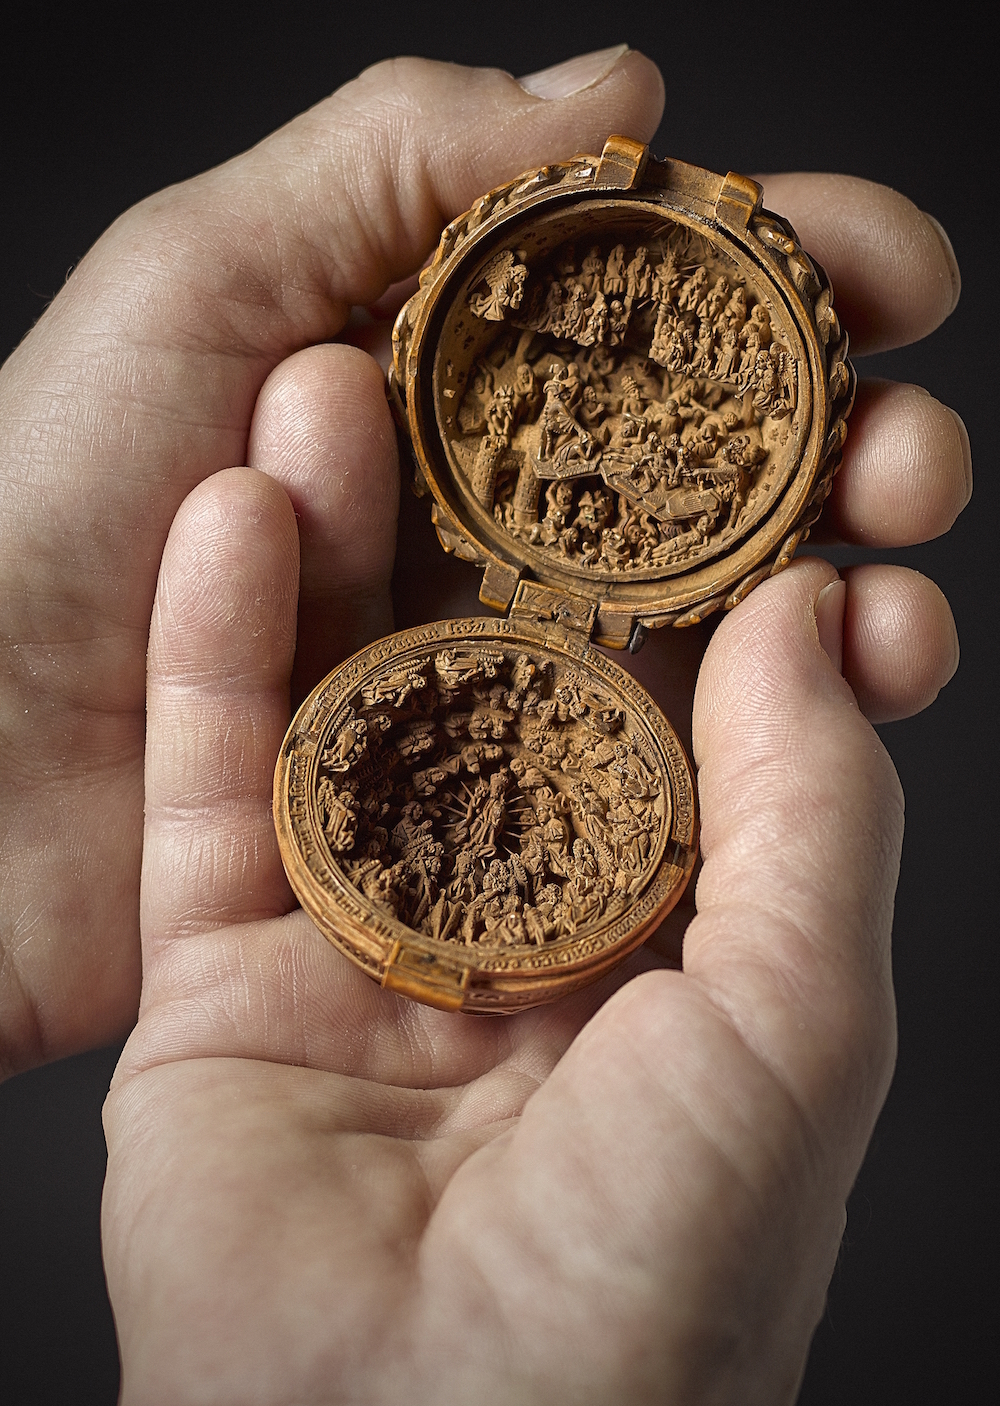 16th Century Miniature Boxwood Carvings That Fit in the Palm of Your Hand (8 pics)